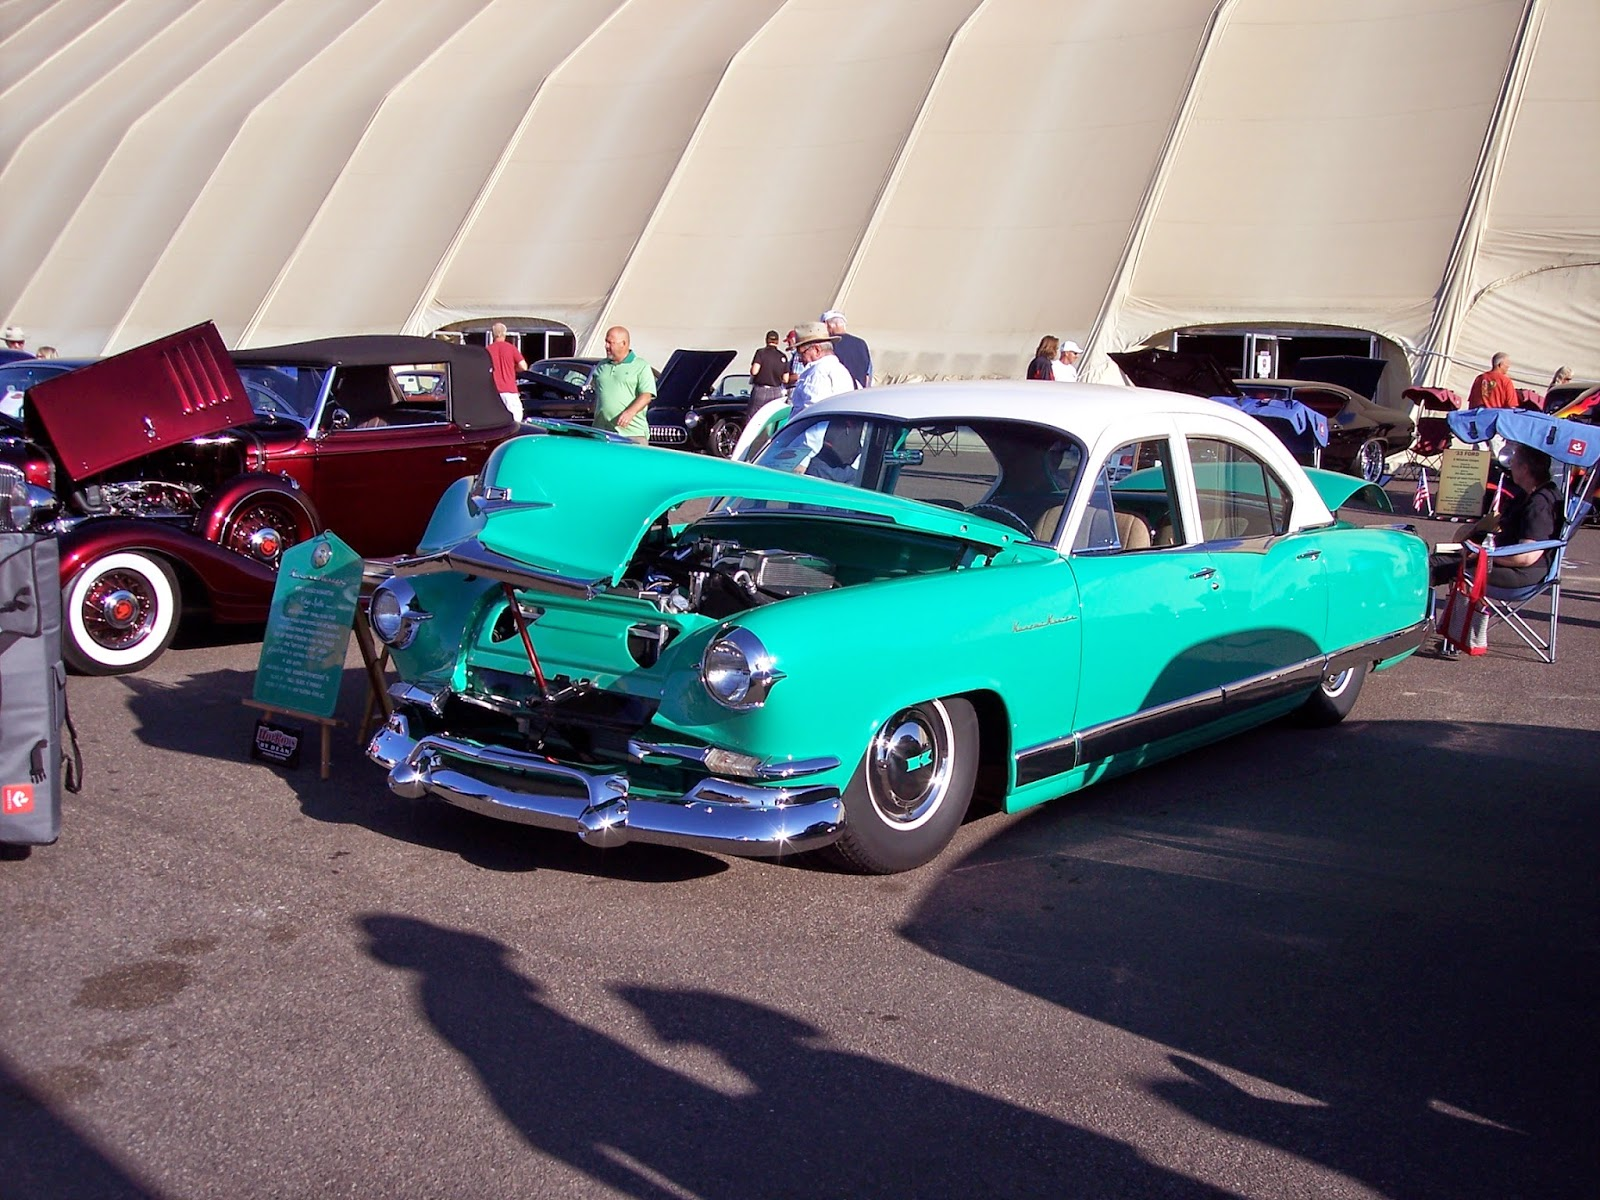 Rons Hot Rods GOOD GUYS SHOW SCOTTSDALE - When is the good guys car show in scottsdale